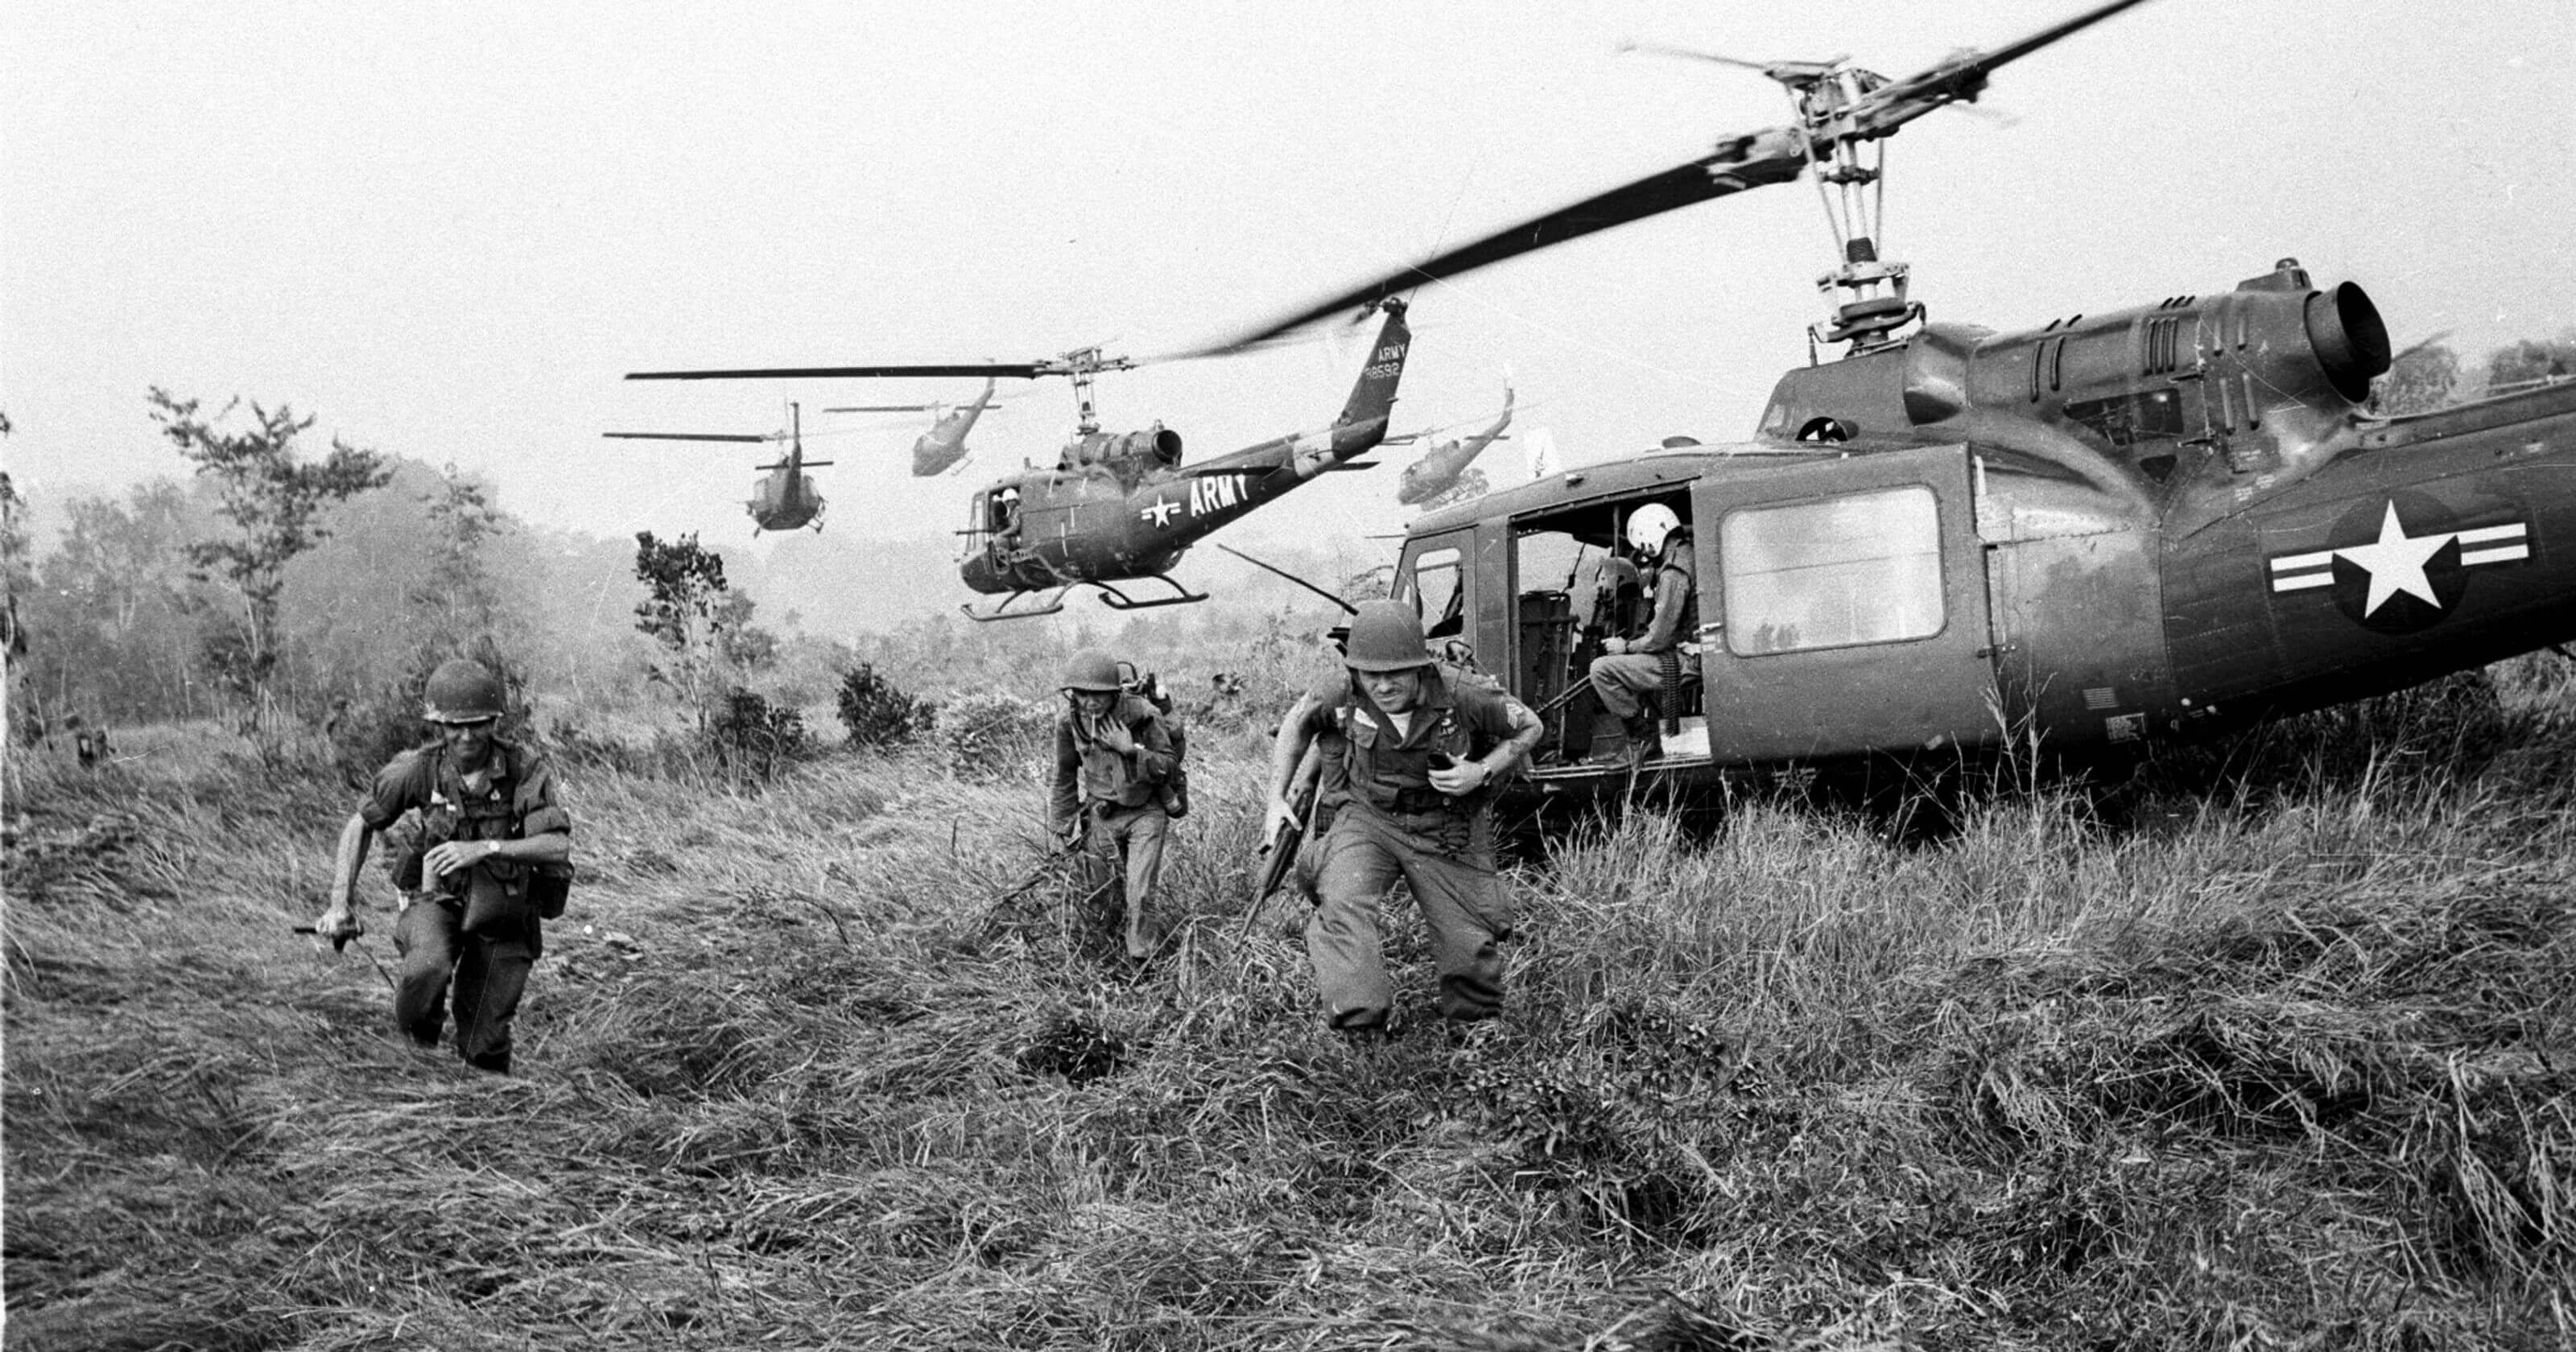 How many Vietnamese people fell down in the Vietnam War? -